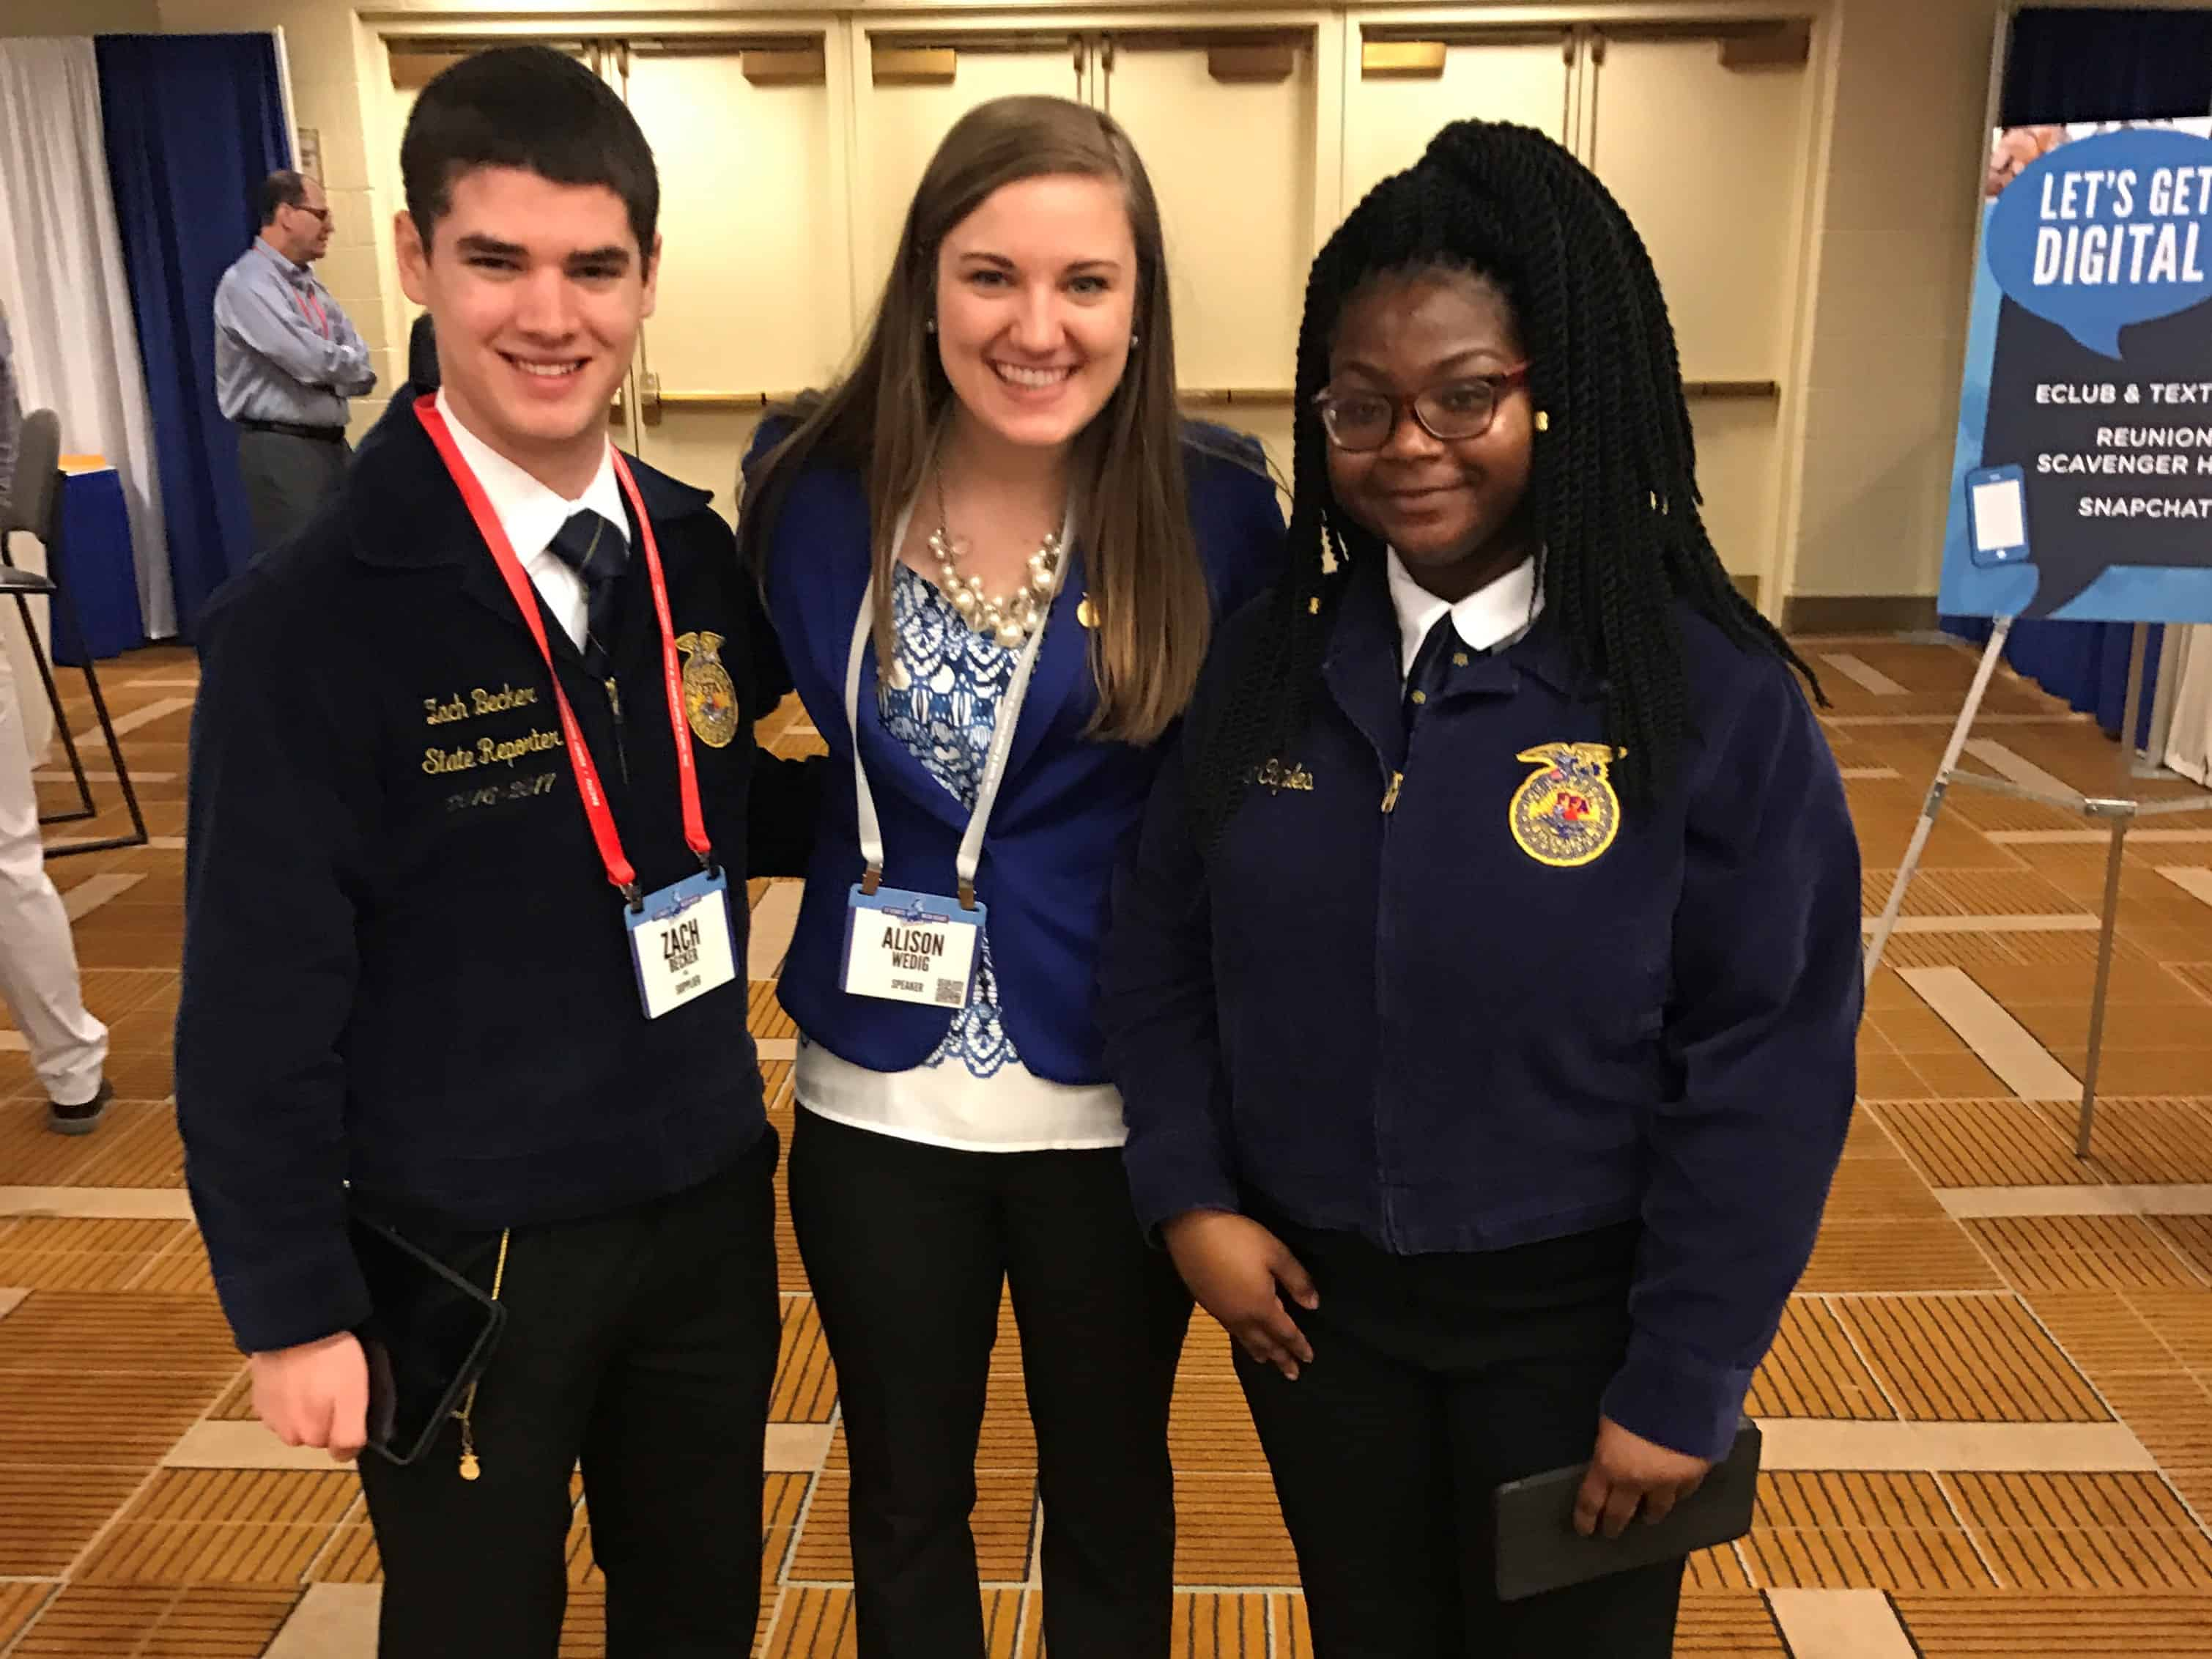 FFA Connection Turns Into Career With Culver's